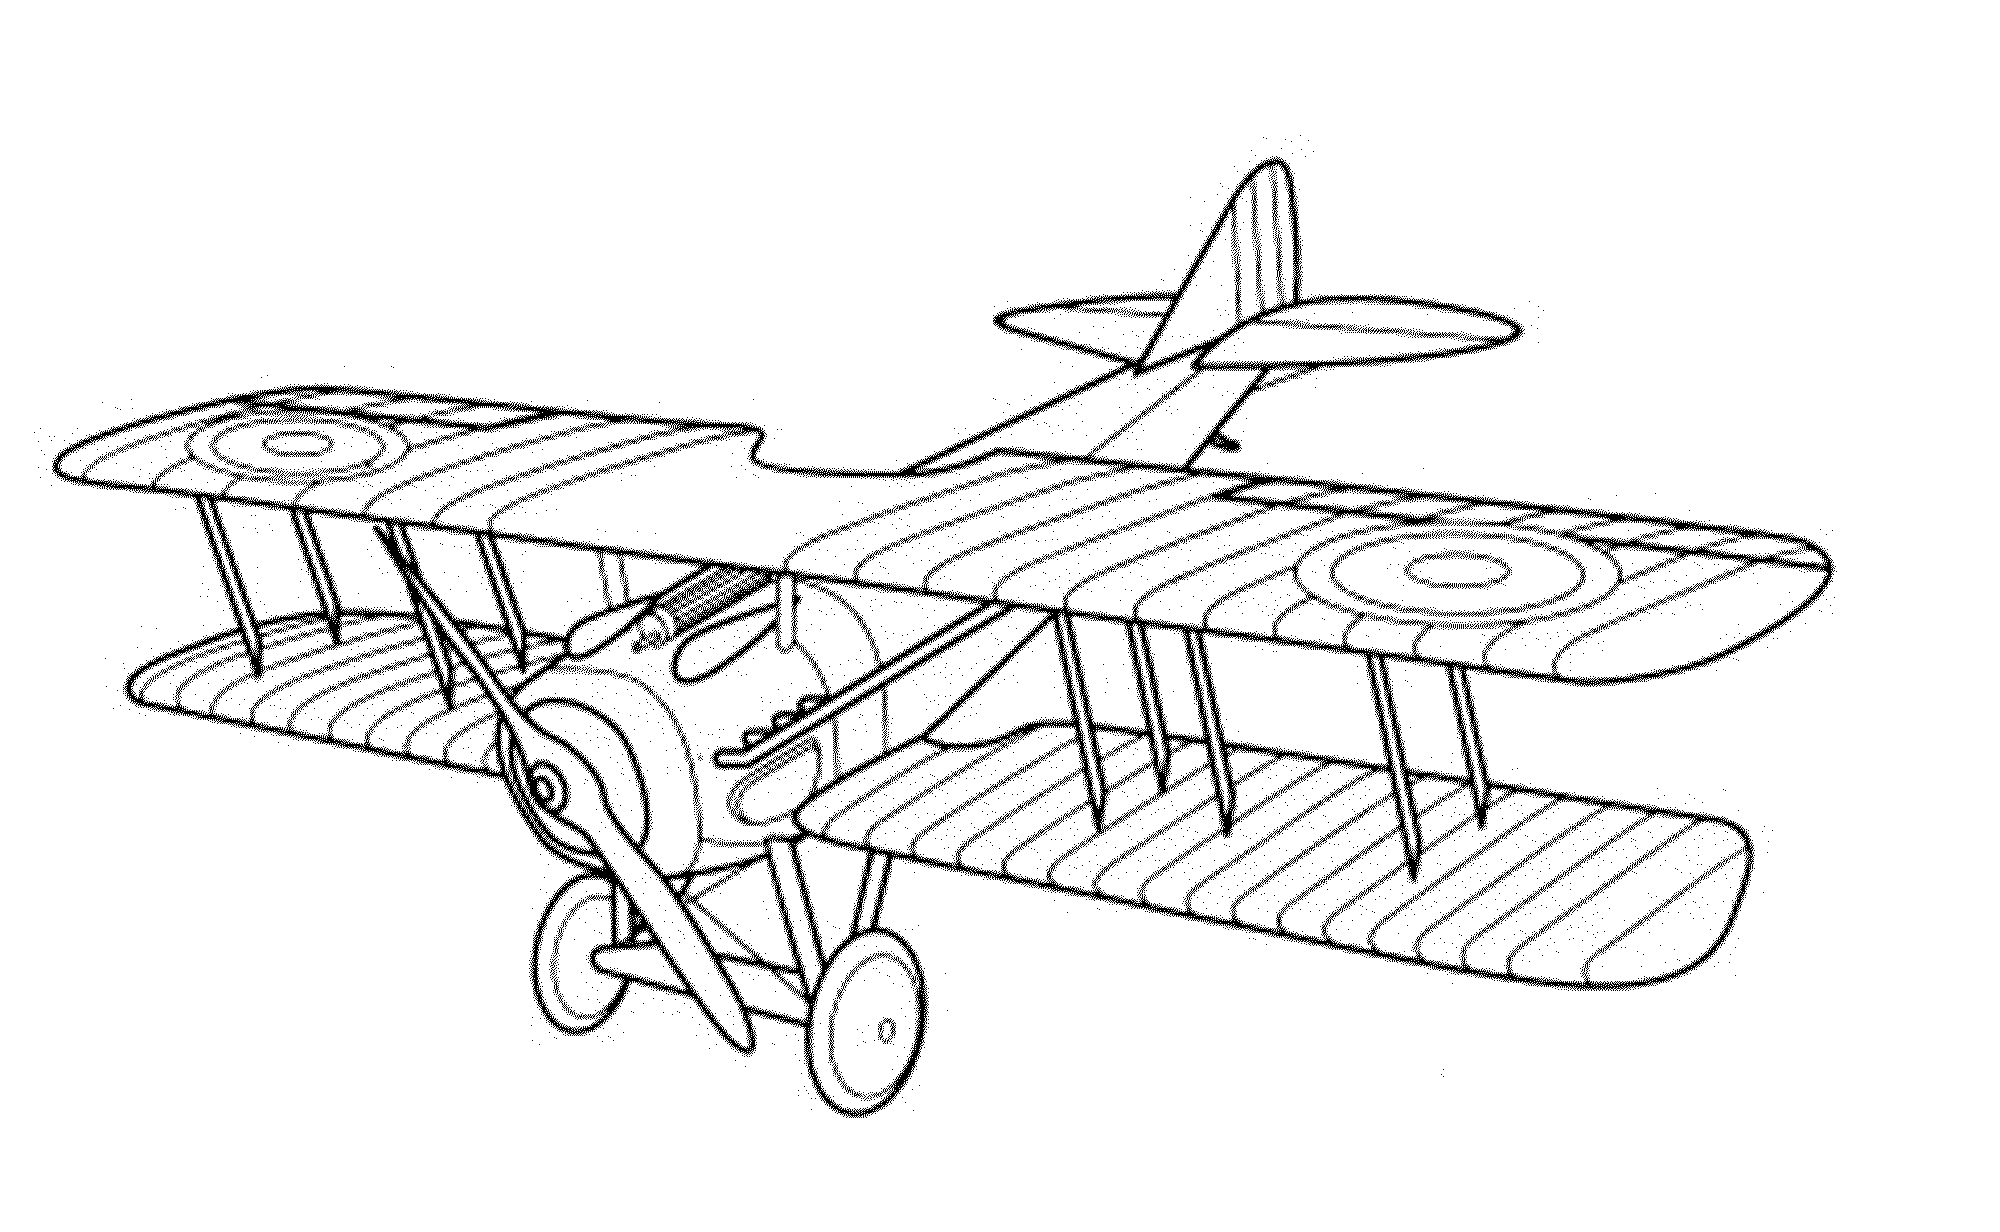 Old Airplane Coloring Pages at GetDrawings.com | Free for ...